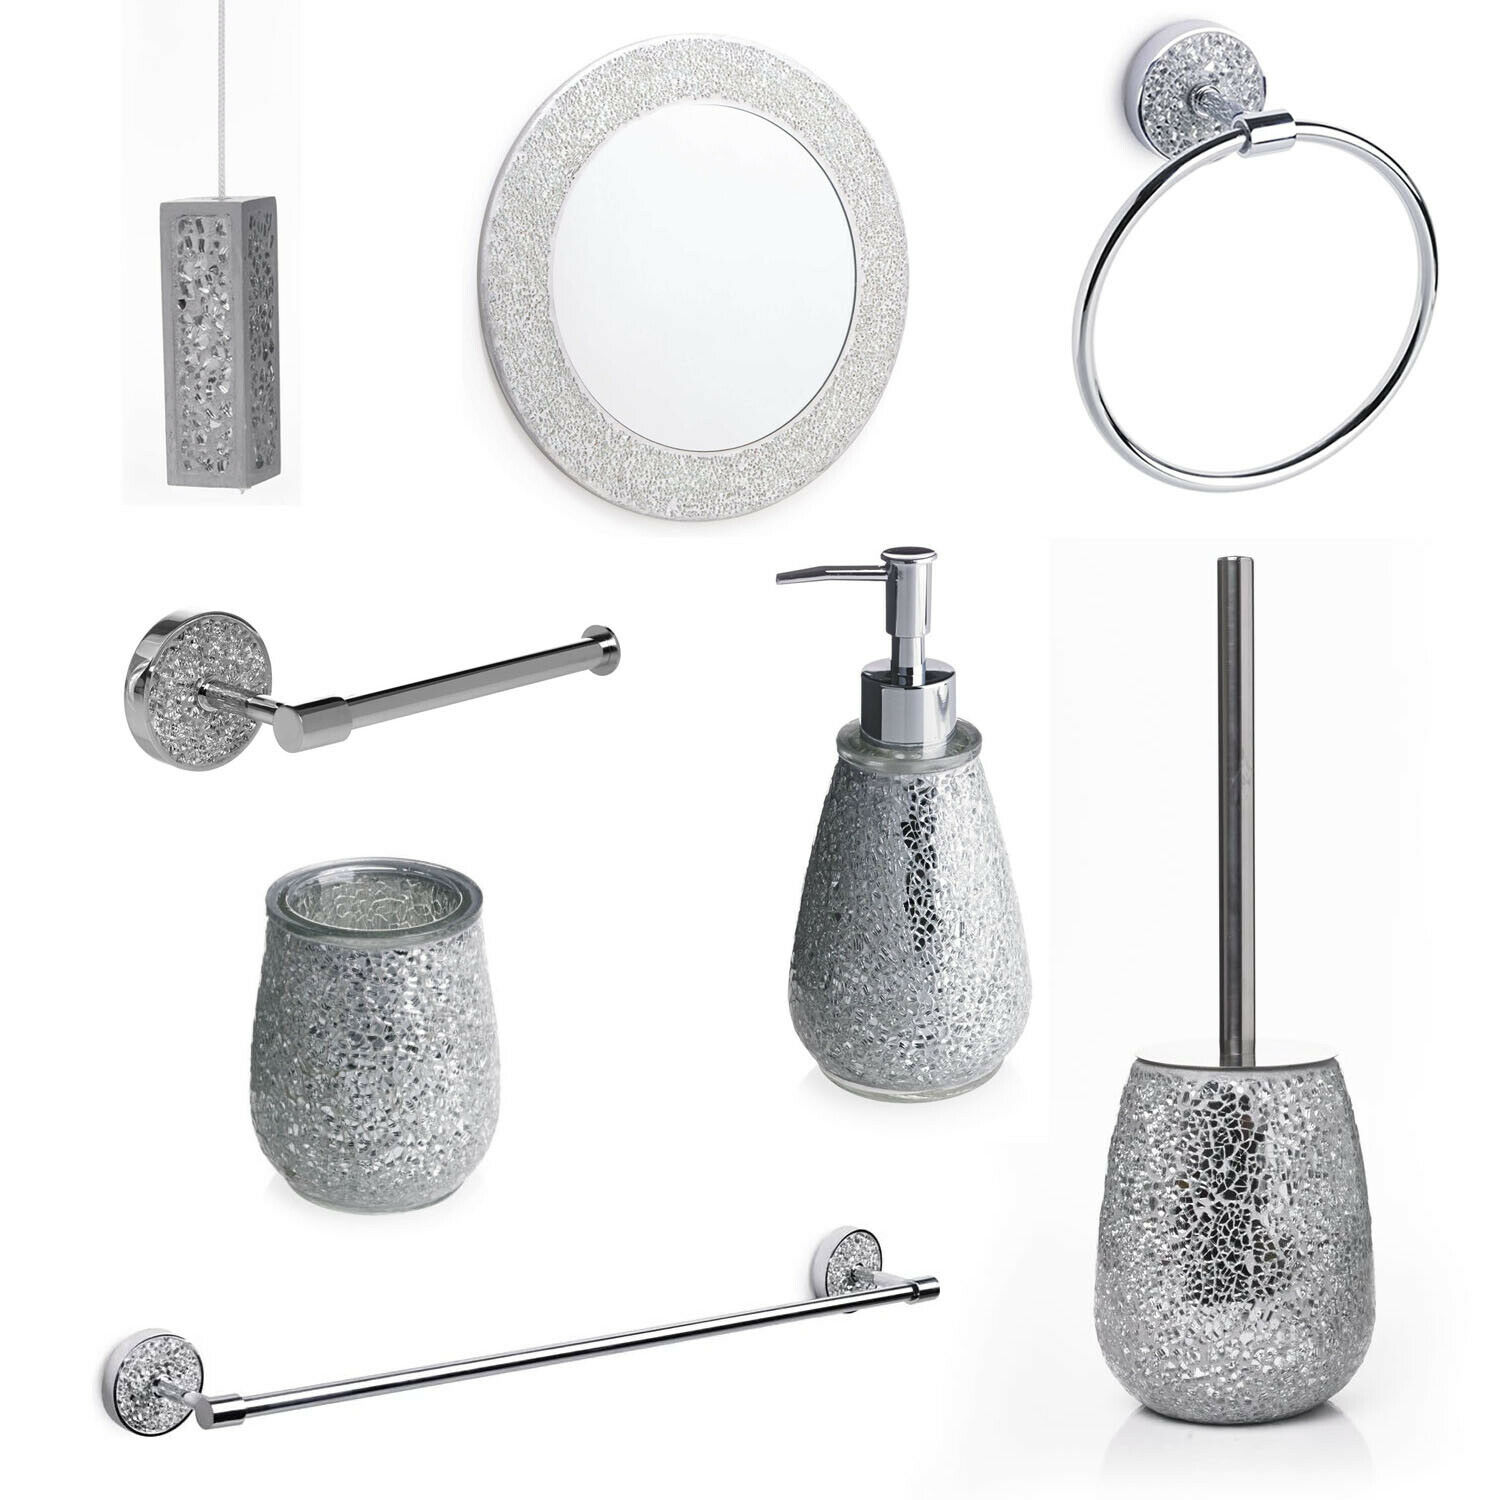 SILVER Mosaic Bathroom Accessories Set. Silver Sparkle Mirror ...